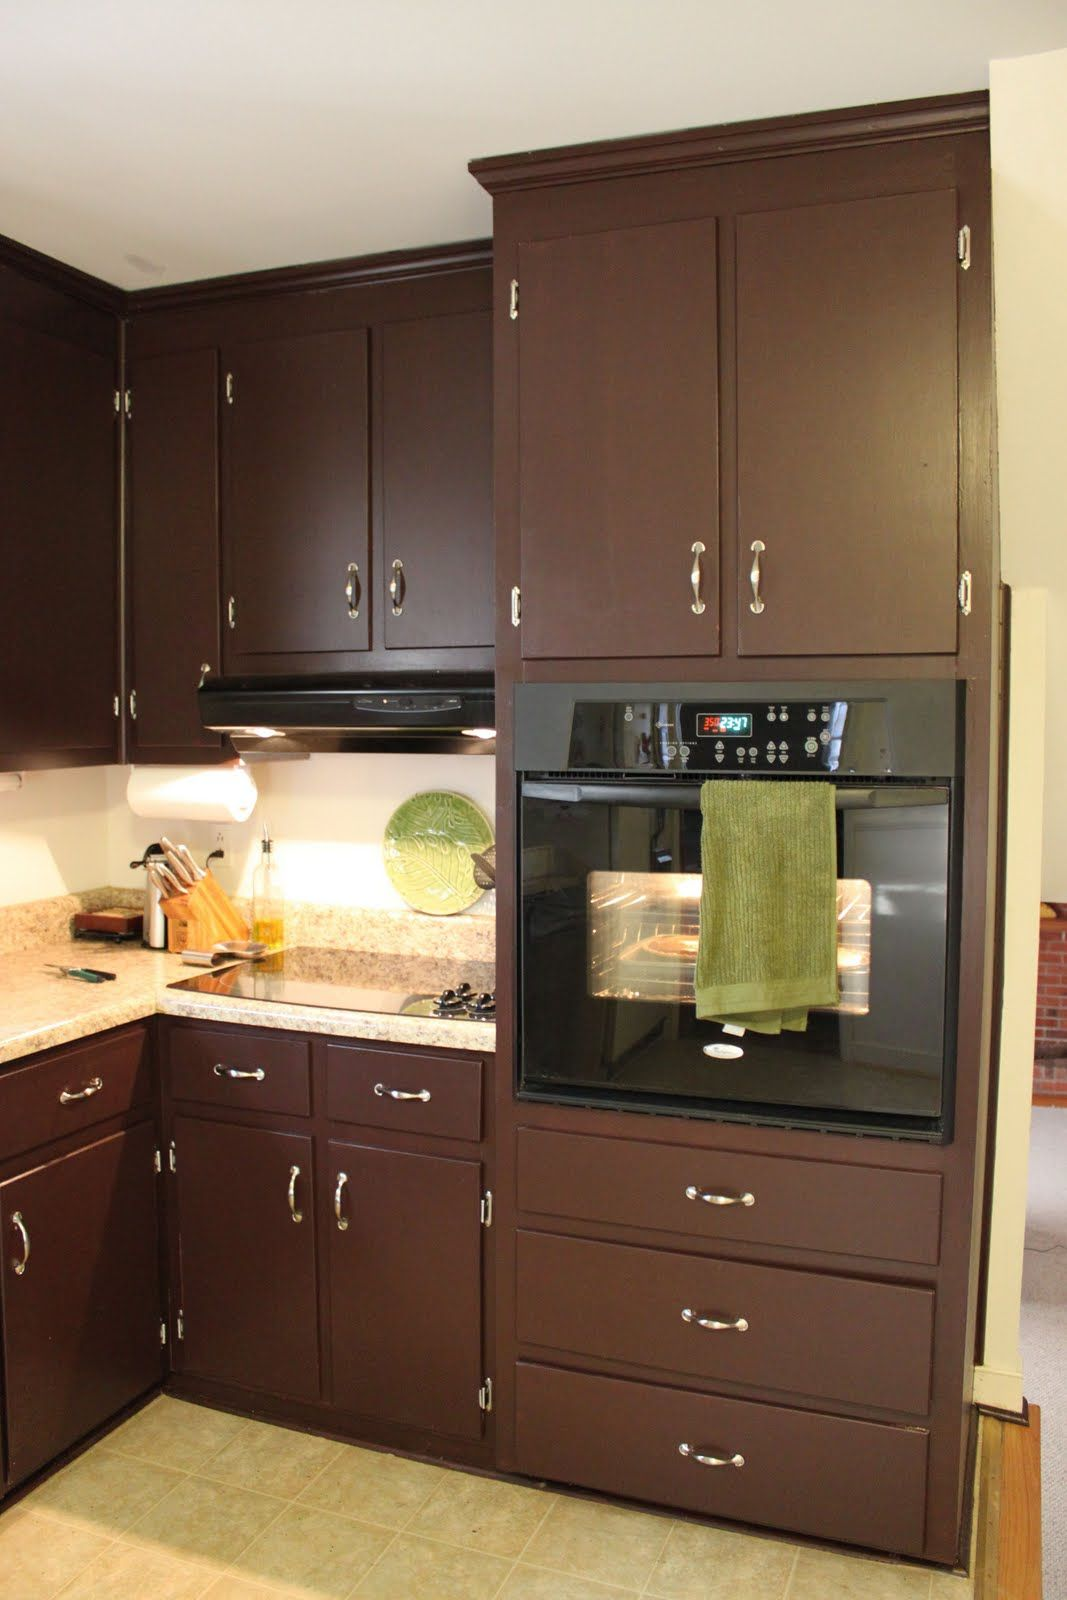 Brown Painted Kitchen Cabinets & Silver Hardware Looks Like Our